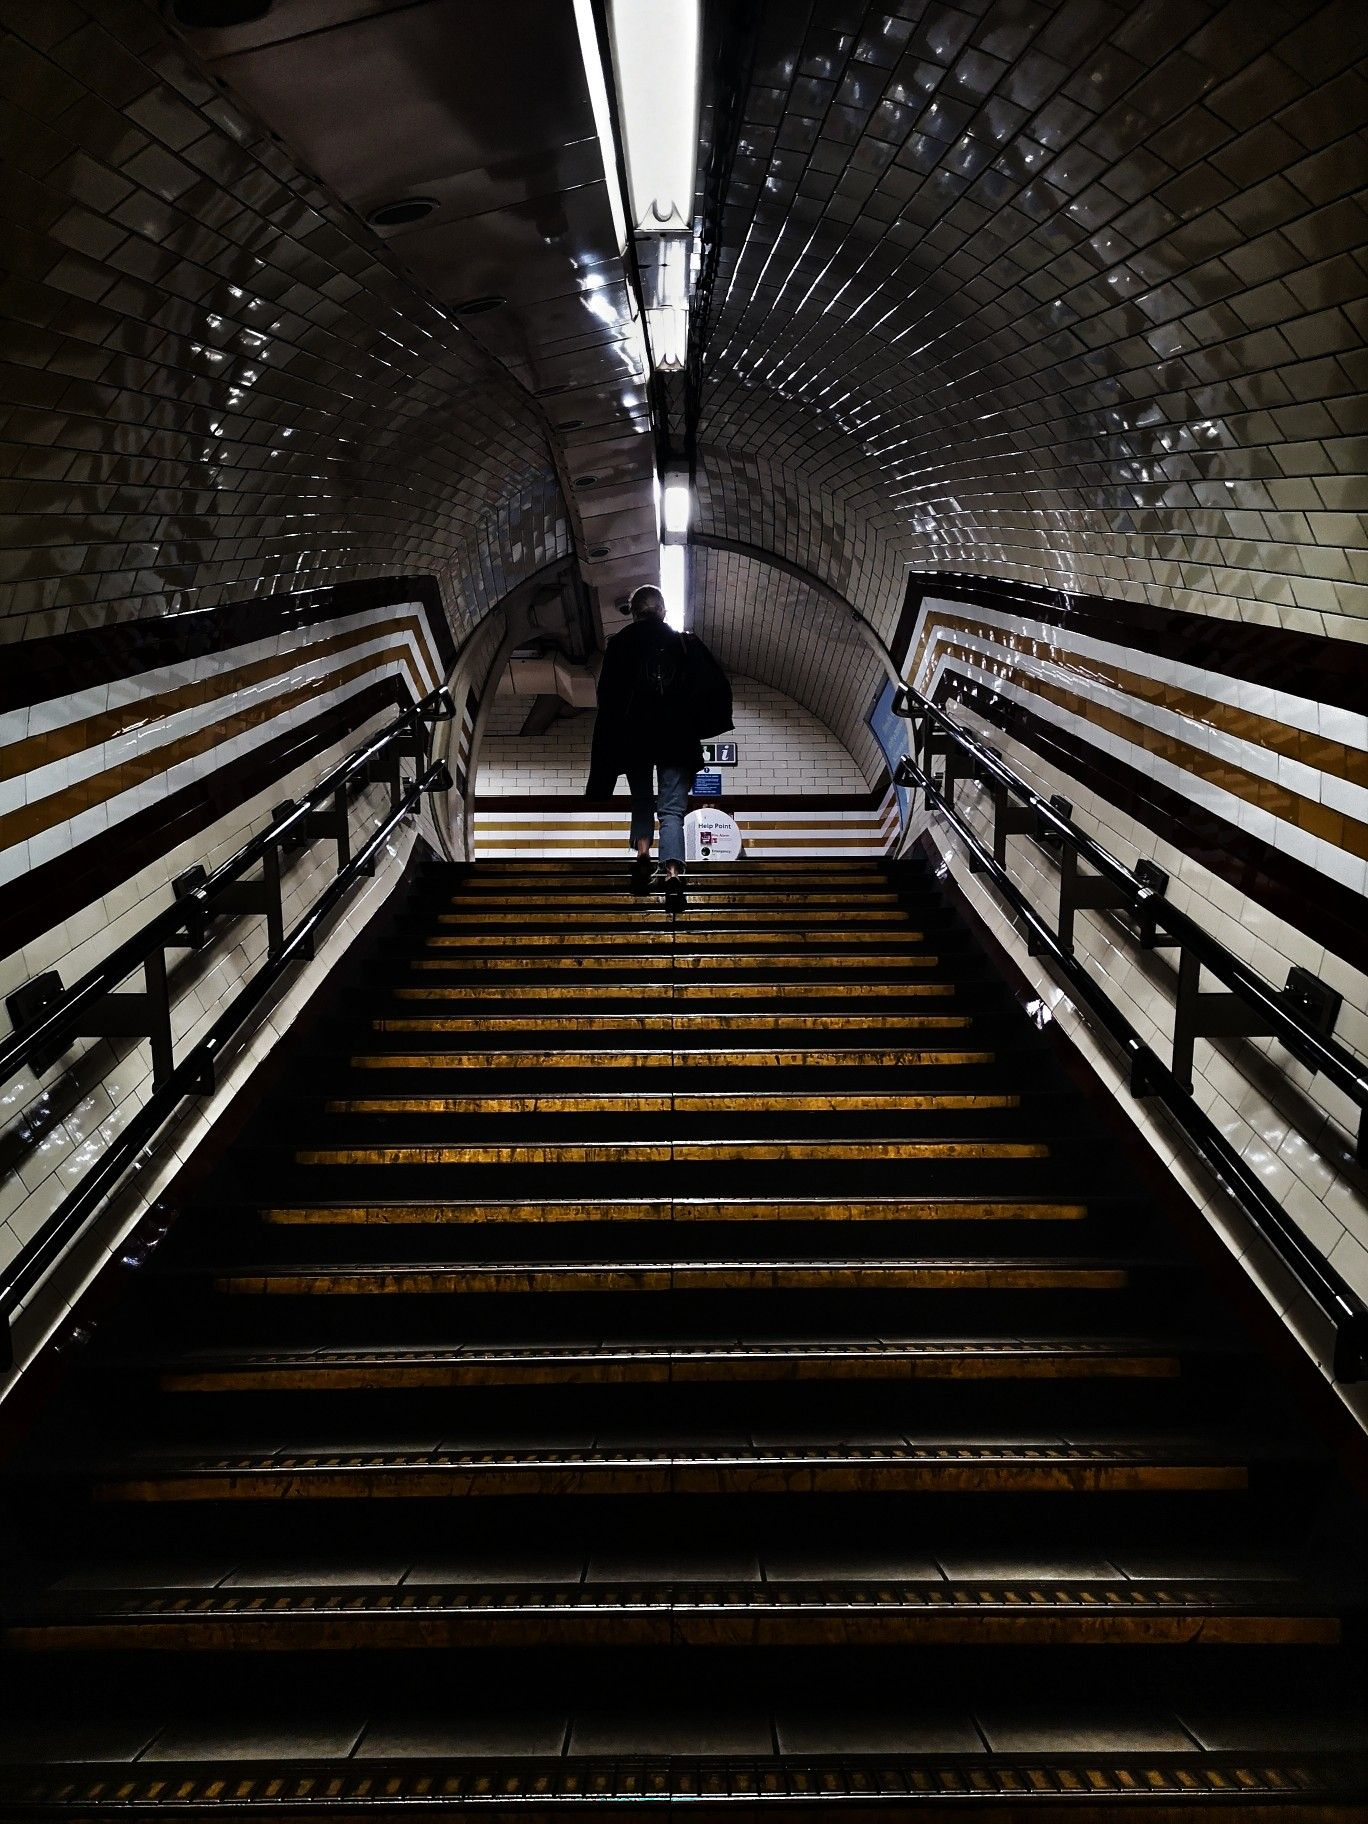 An underground tube station in London, UK